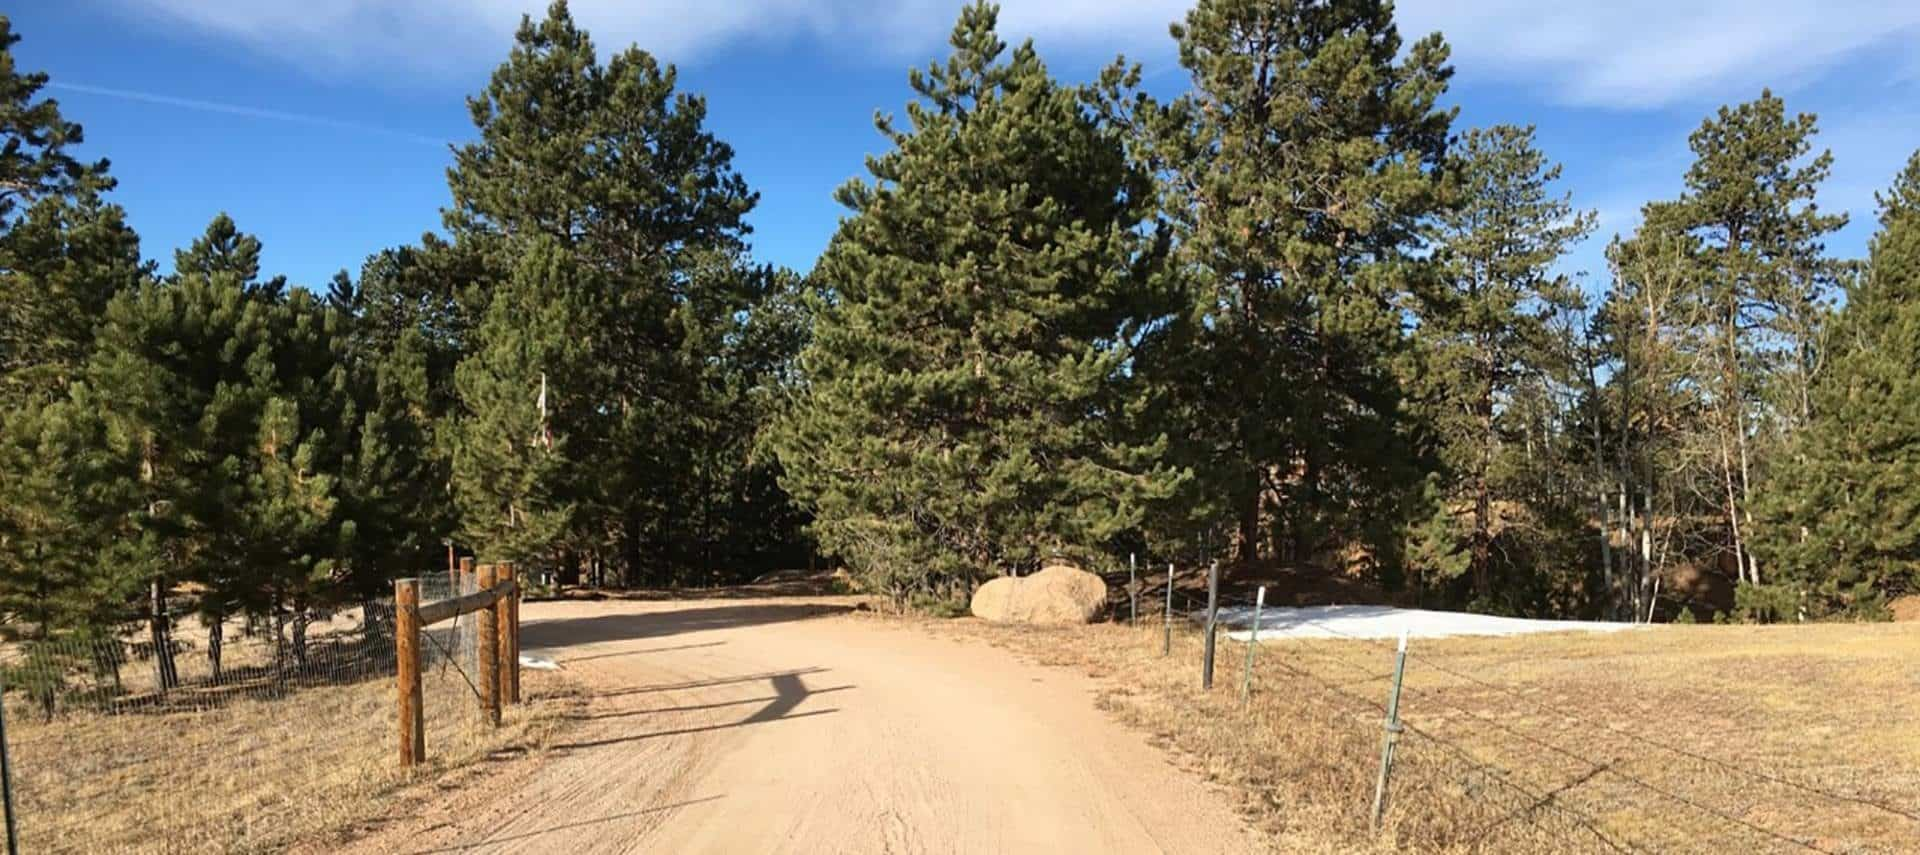 Dirt road leading to the property surrounded by large pine trees